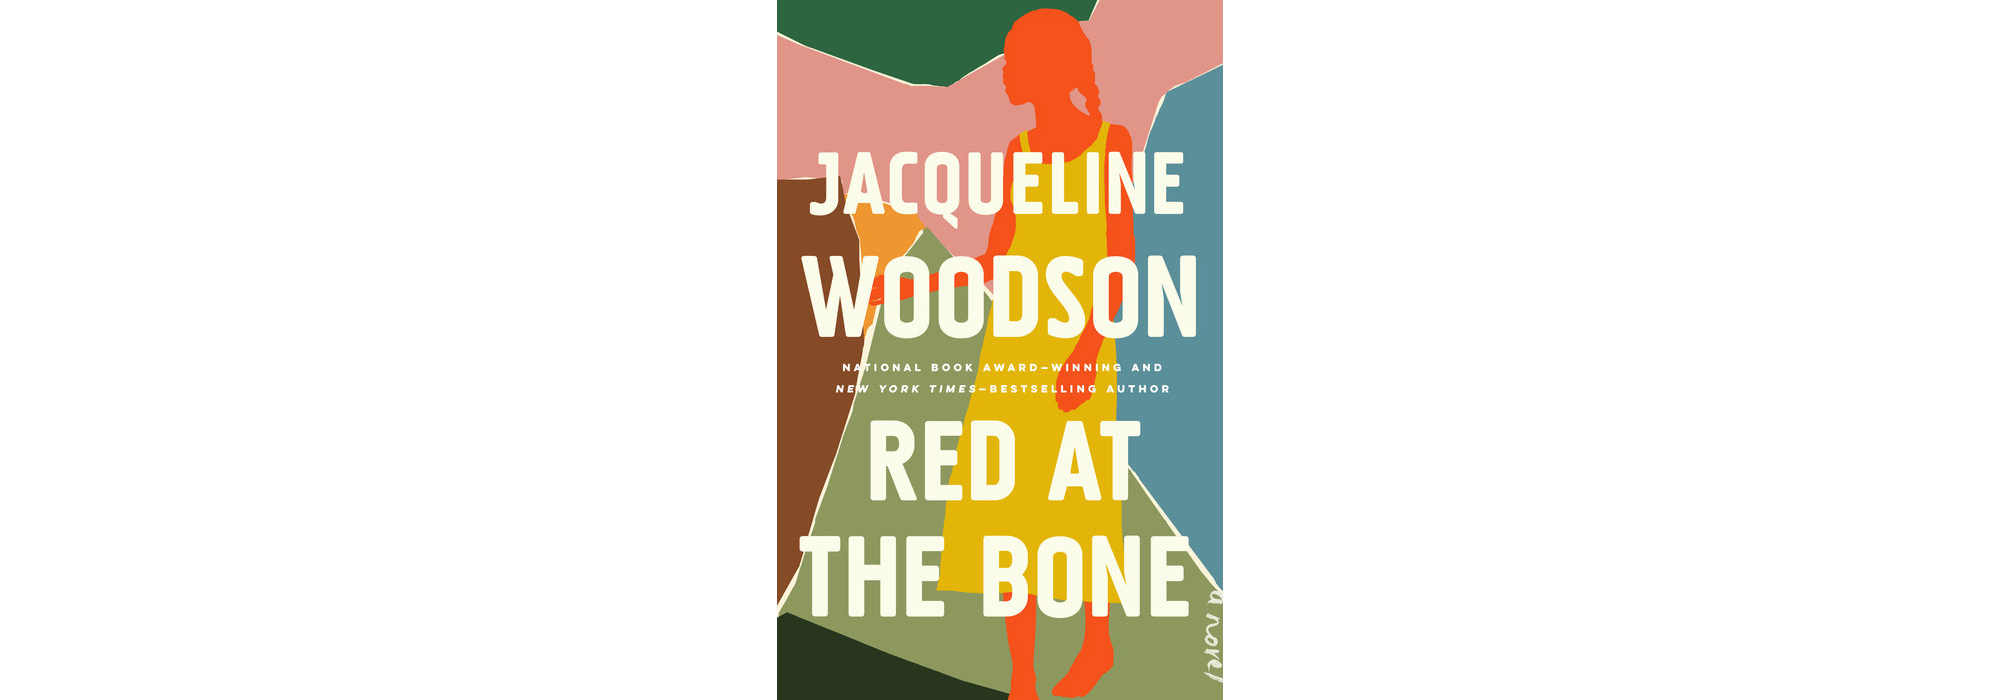 Cover of Red at the Bone, by Jacqueline Woodson